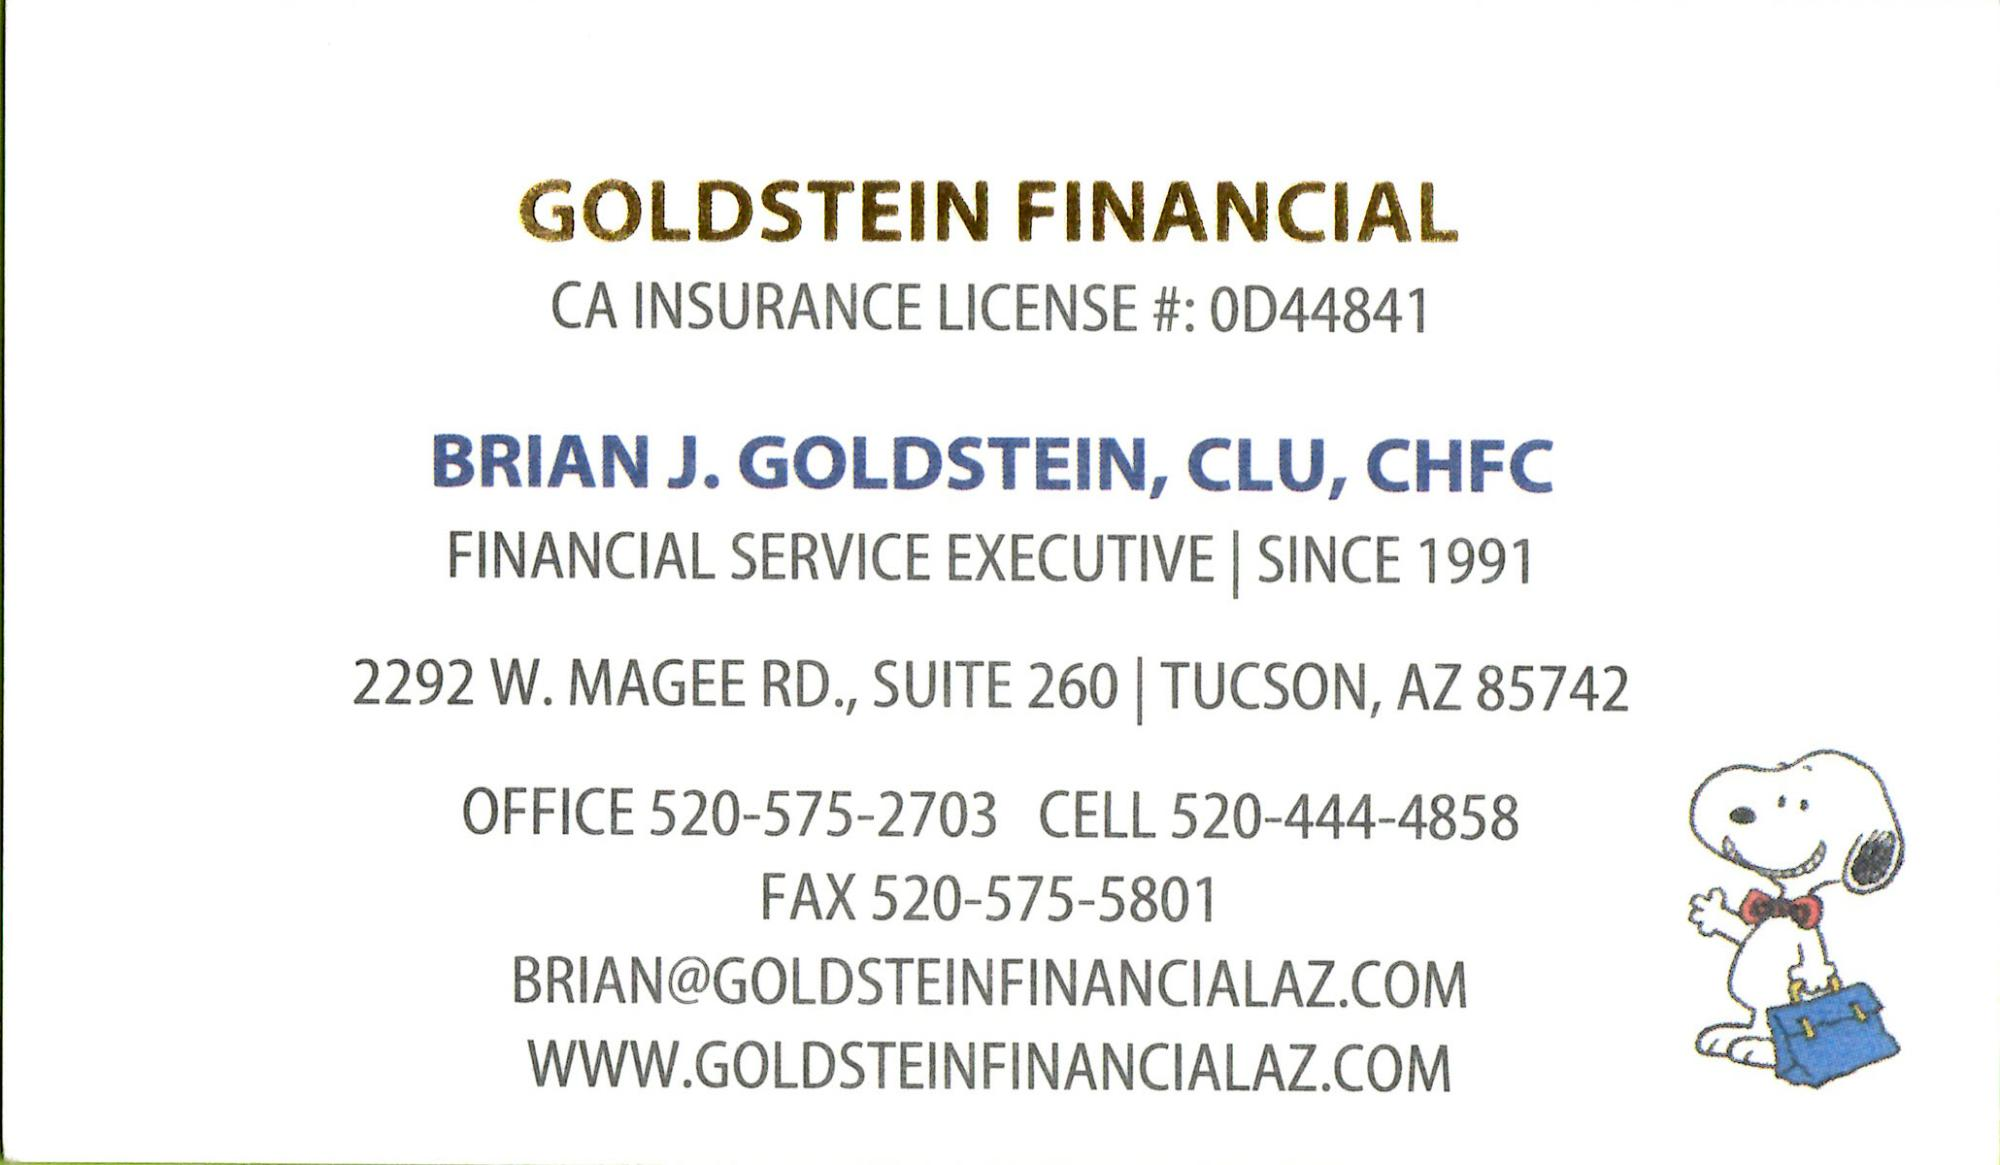 Goldstein Financial